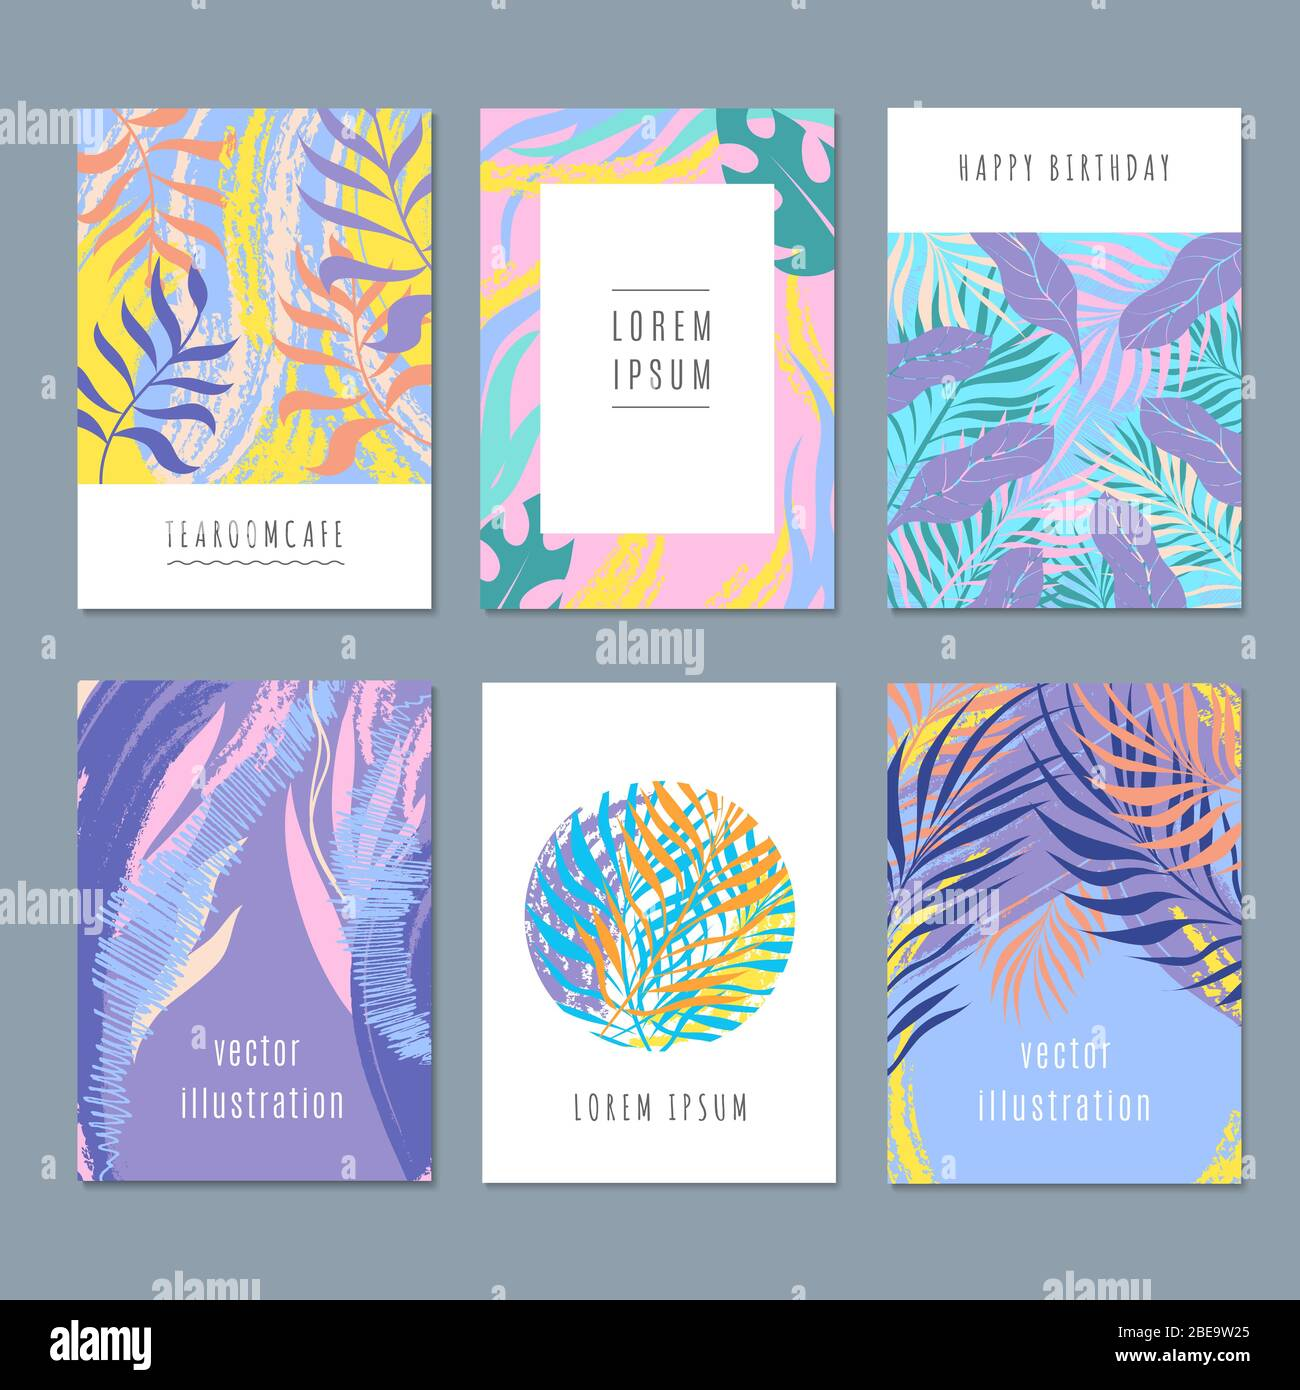 Creative Drawing Vector Trendy Backgrounds With Nature Graphics And Summer Tropical Leaves Summer Drawing Leaf Poster And Banner Illustration Stock Vector Image Art Alamy 730 tropical leaves white background stock vector art and graphics. https www alamy com creative drawing vector trendy backgrounds with nature graphics and summer tropical leaves summer drawing leaf poster and banner illustration image353029773 html